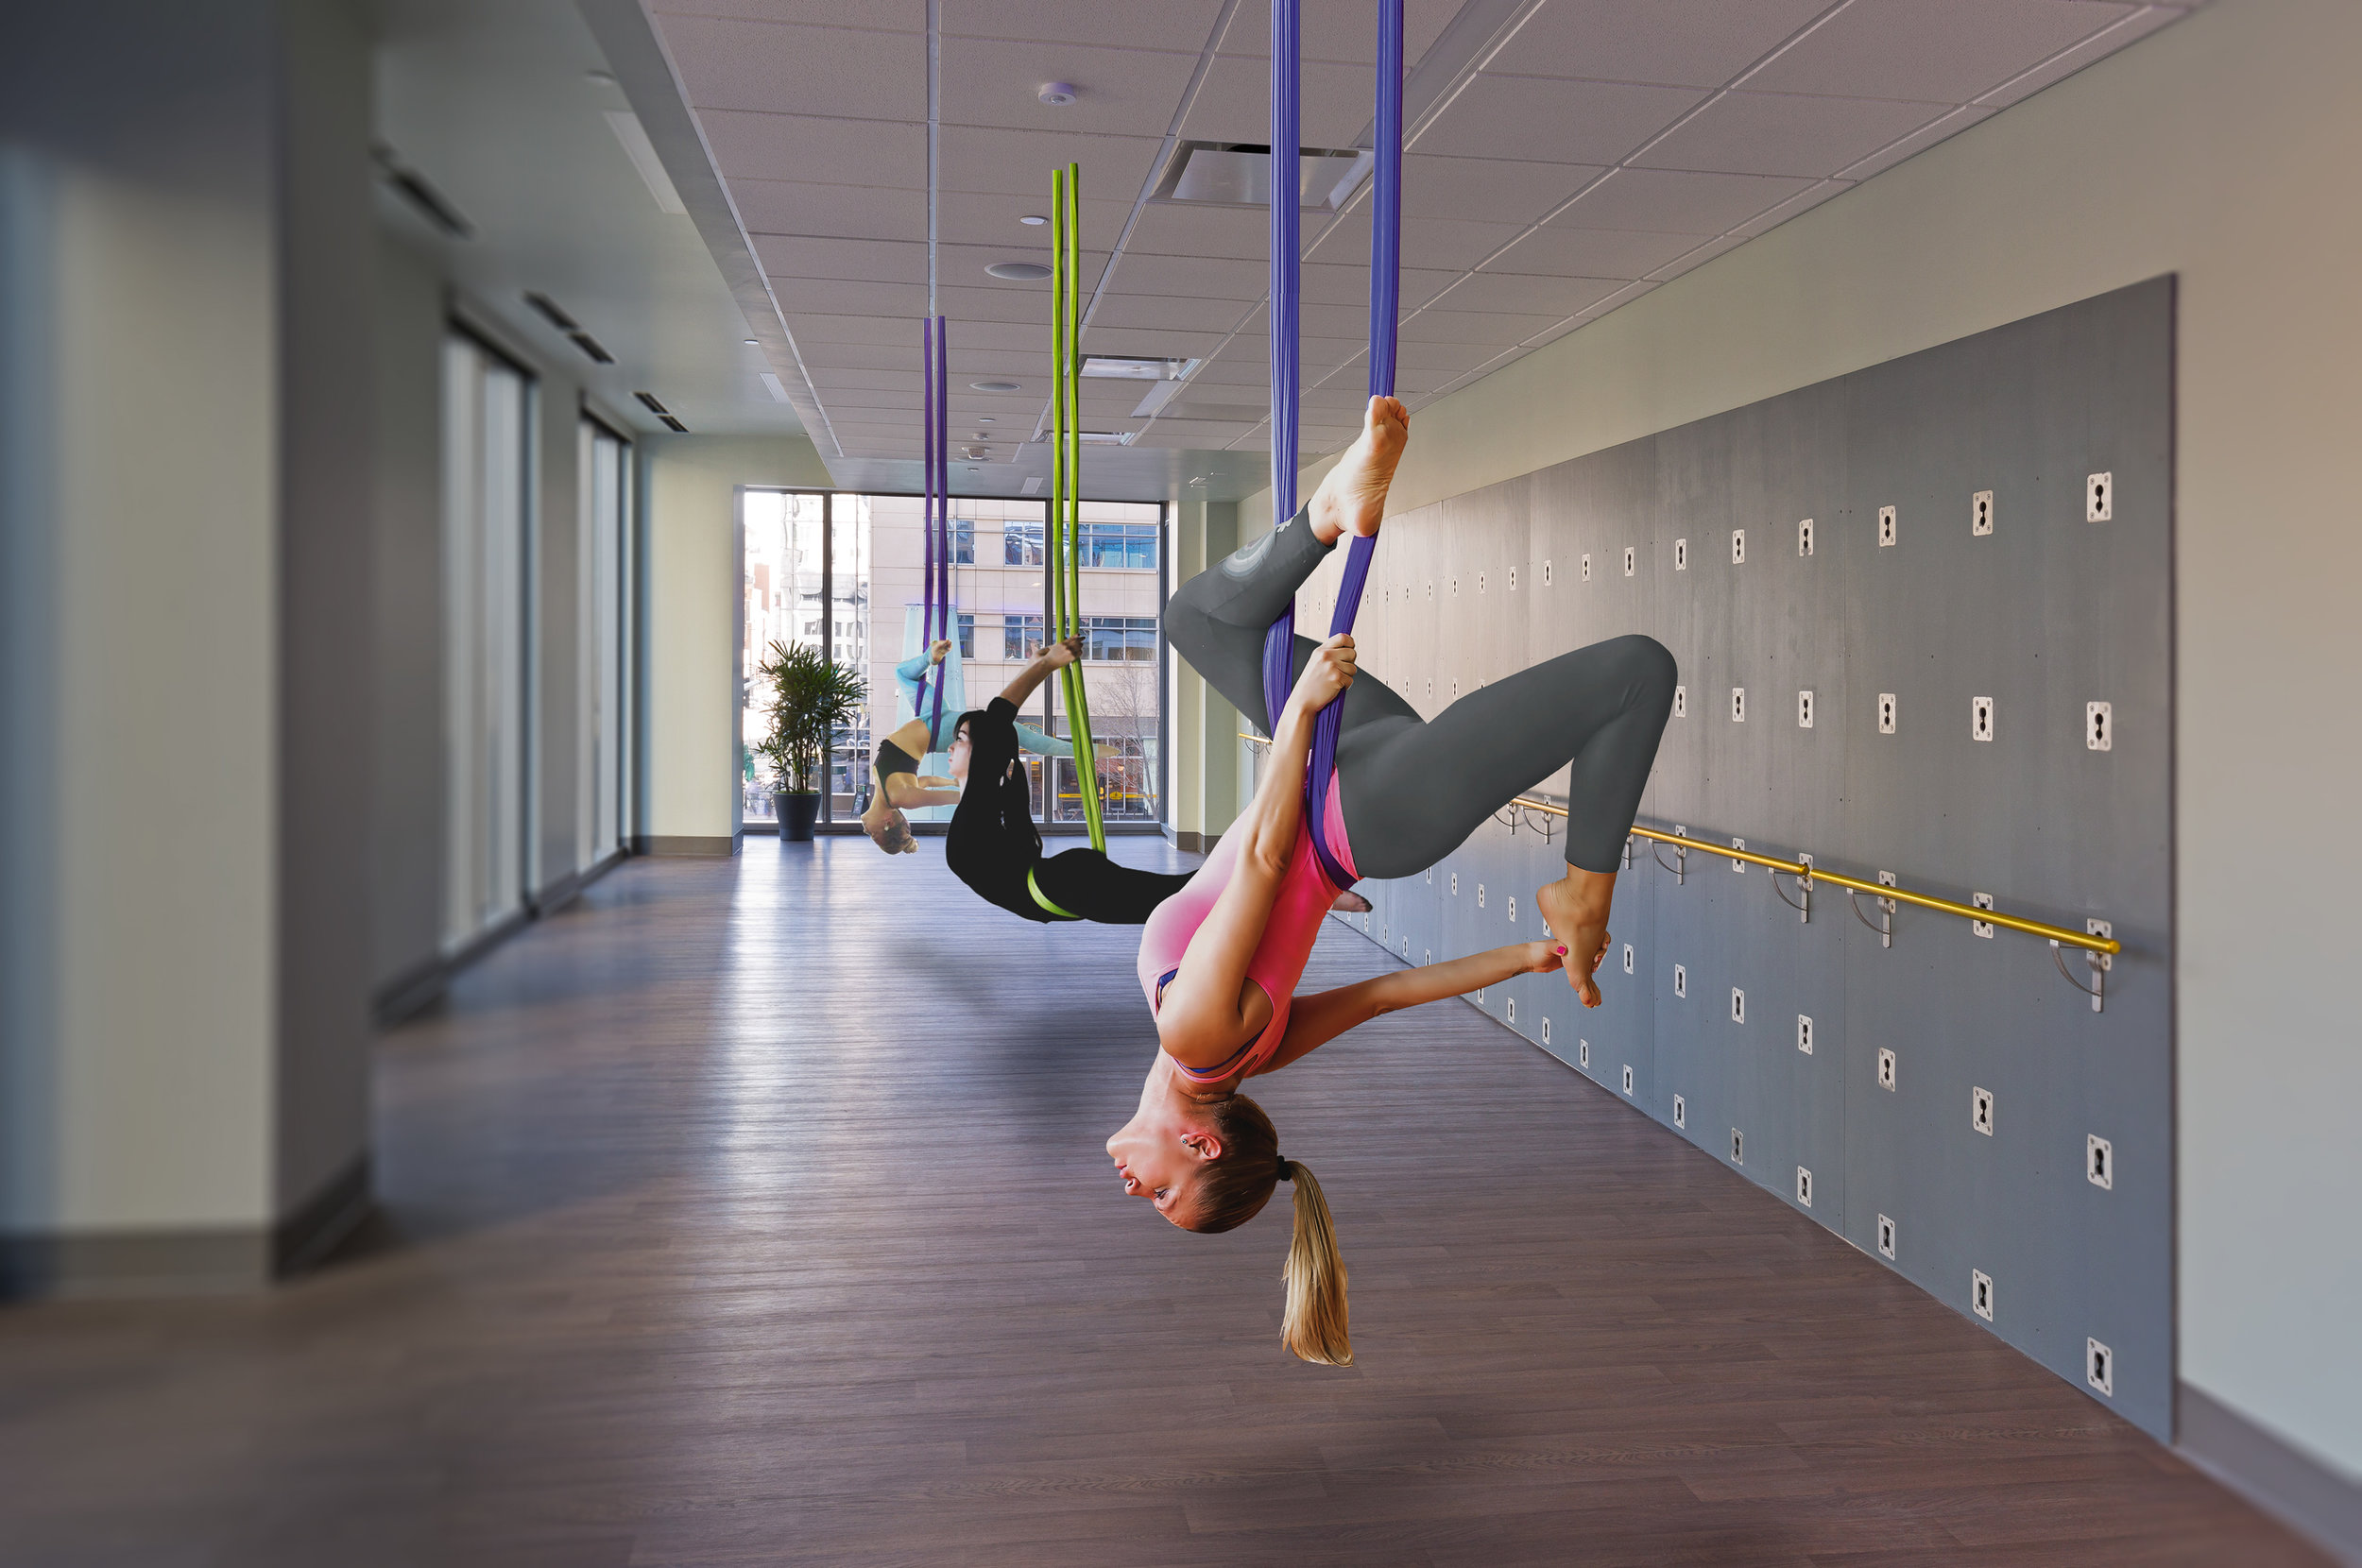 Aerial yoga will be offered in the new Wellbridge Club.